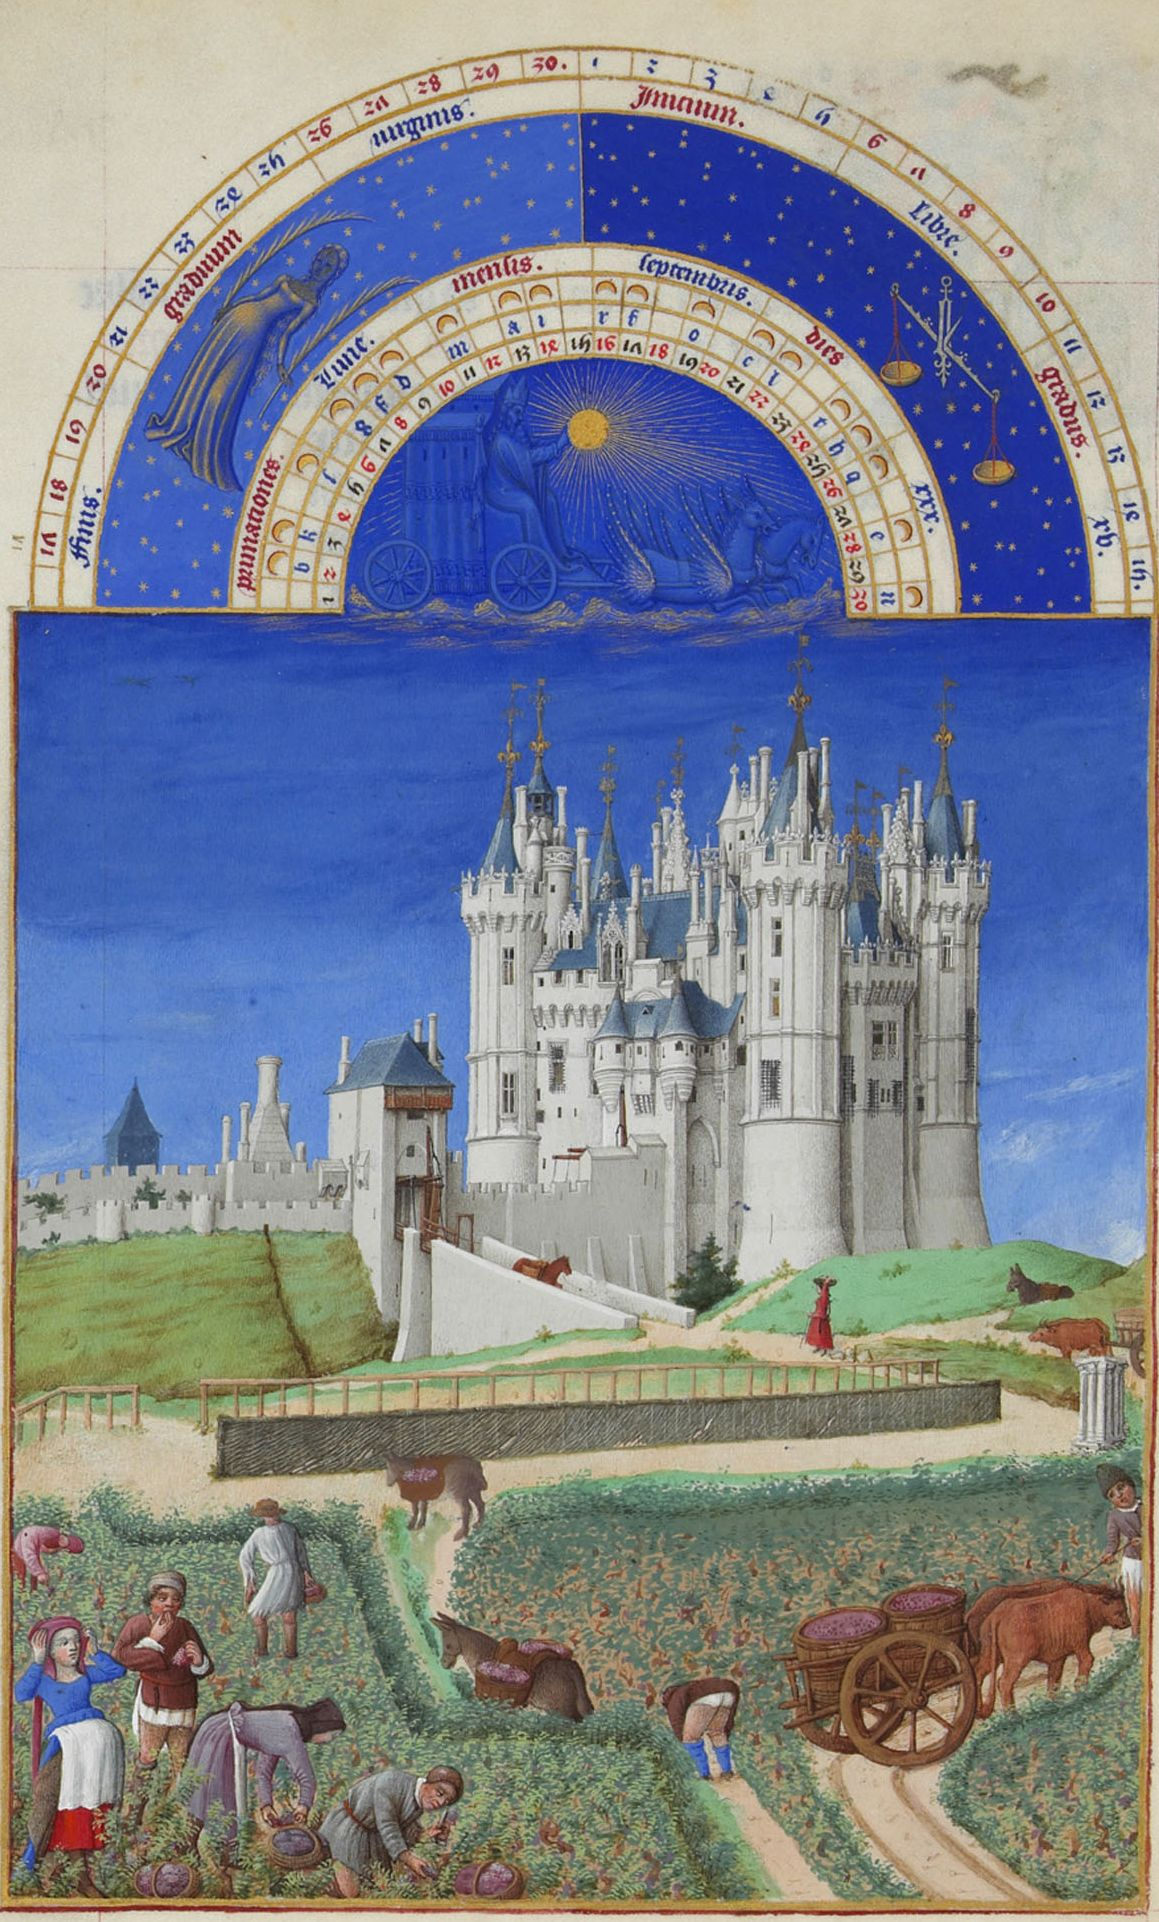 Illumination of a castle in September